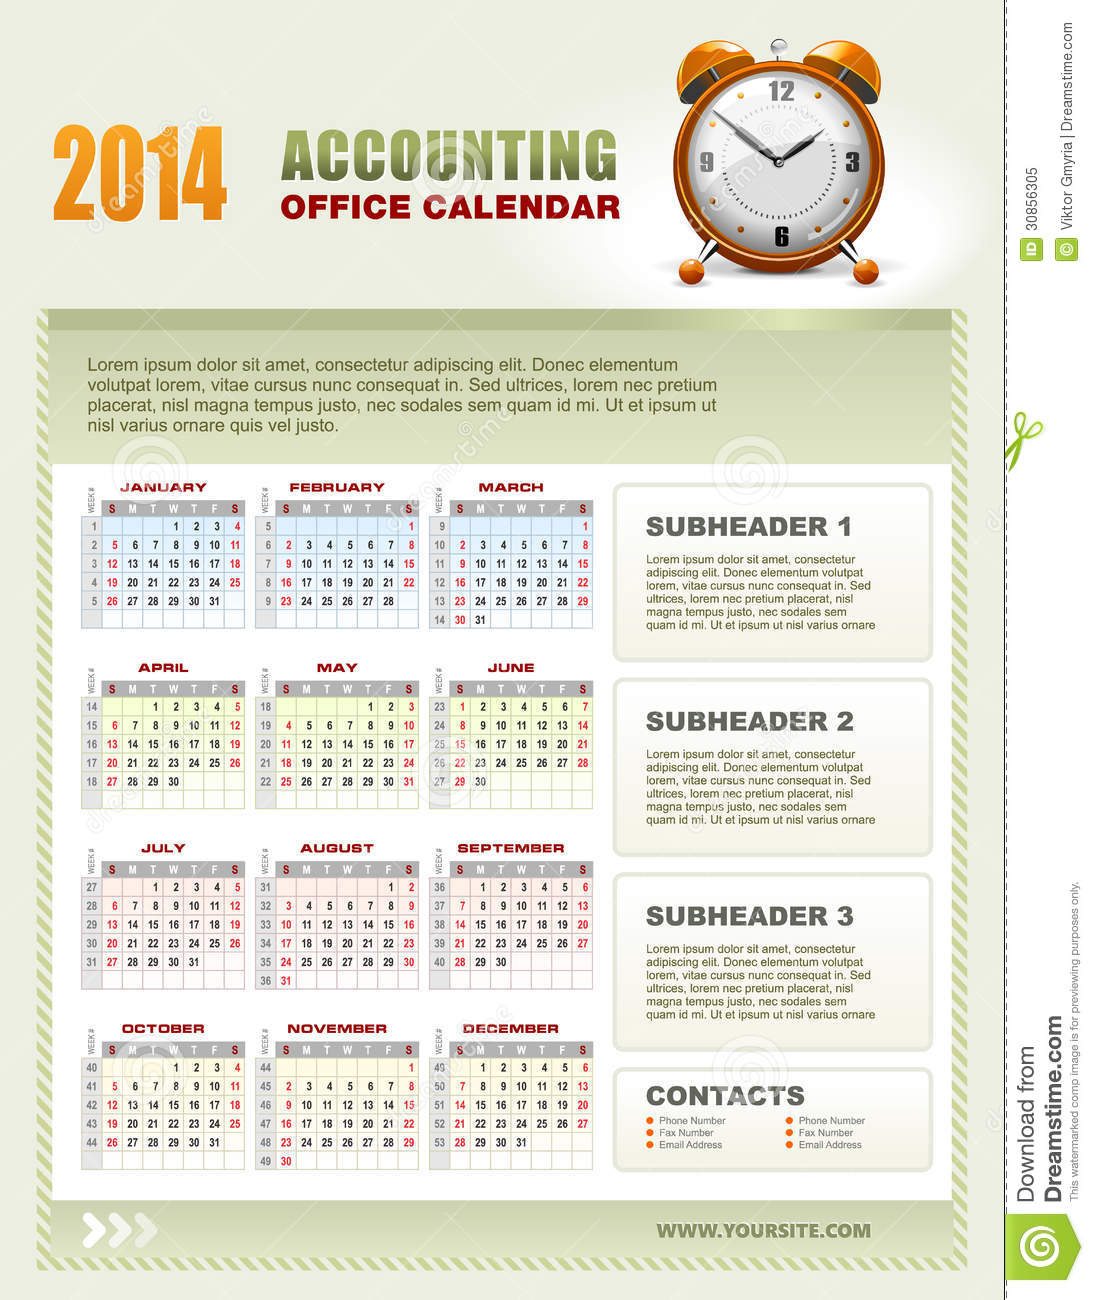 2014 Accounting Calendar With Week Numbers Vector Stock